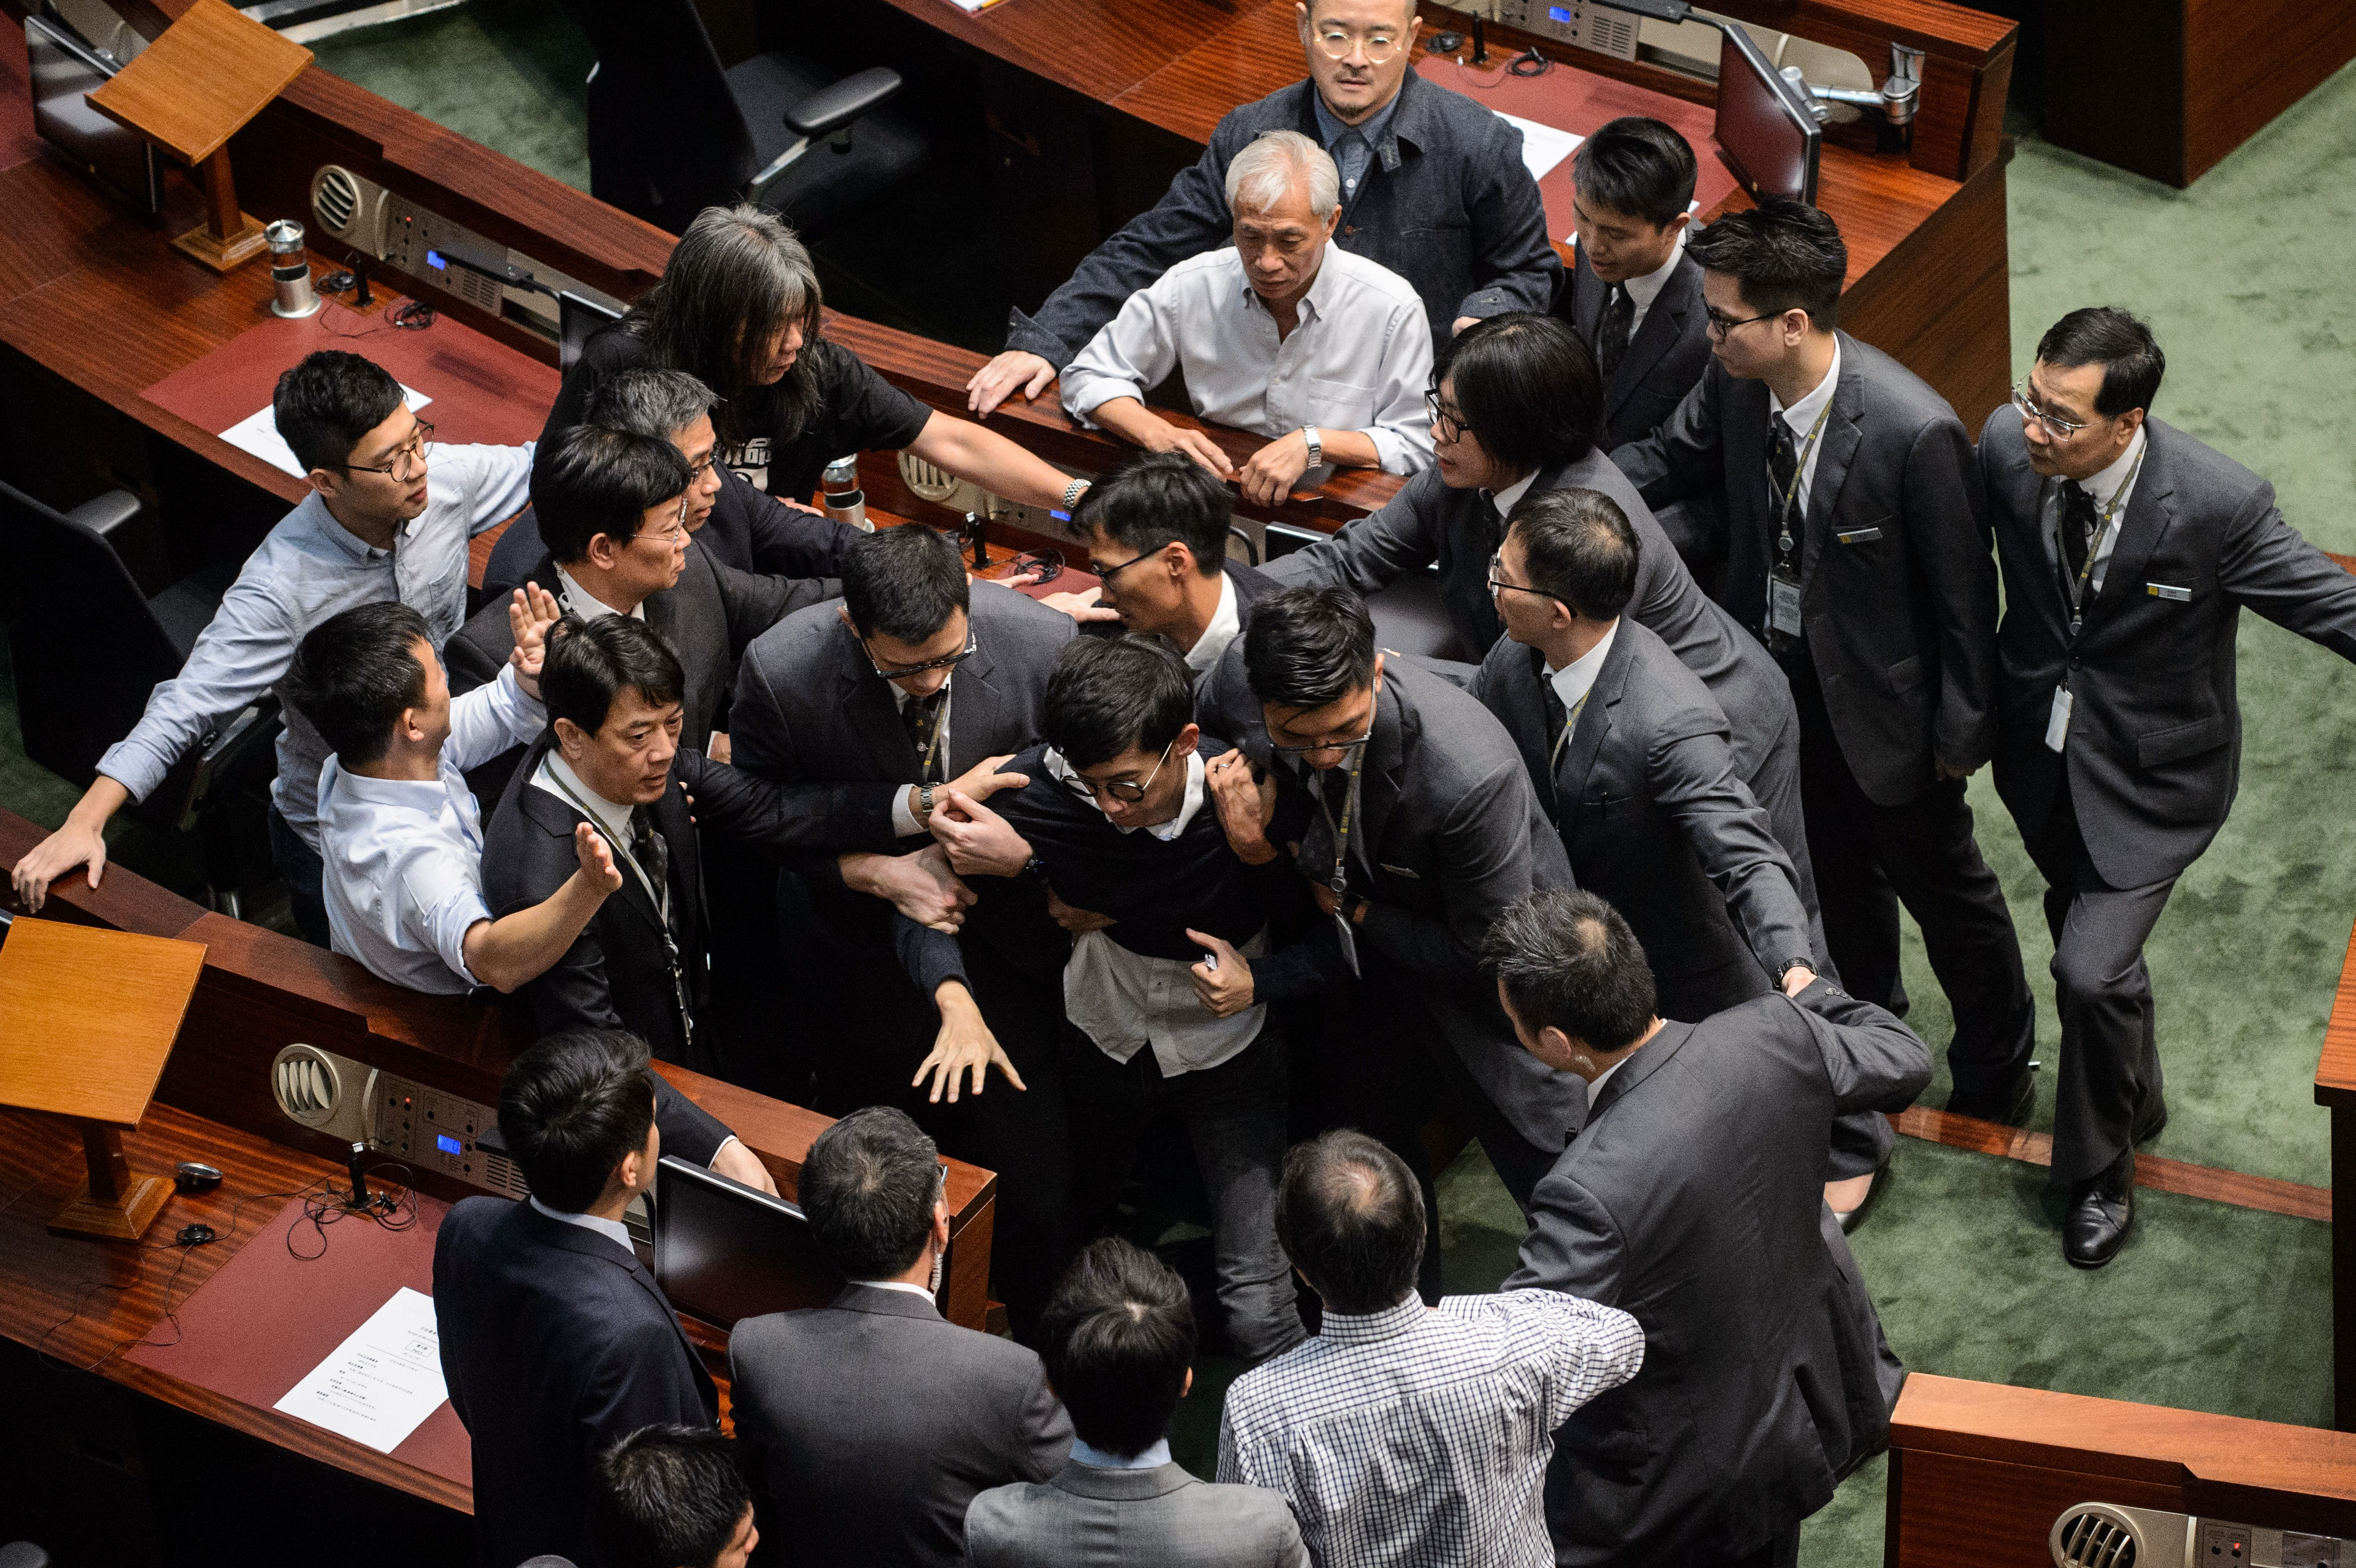 Newly elected lawmaker Sixtus  Baggio  Leung, center, is restrained by security after attempting to read out his oath of office at the Legislative Council in Hong Kong on Nov. 2, 2016